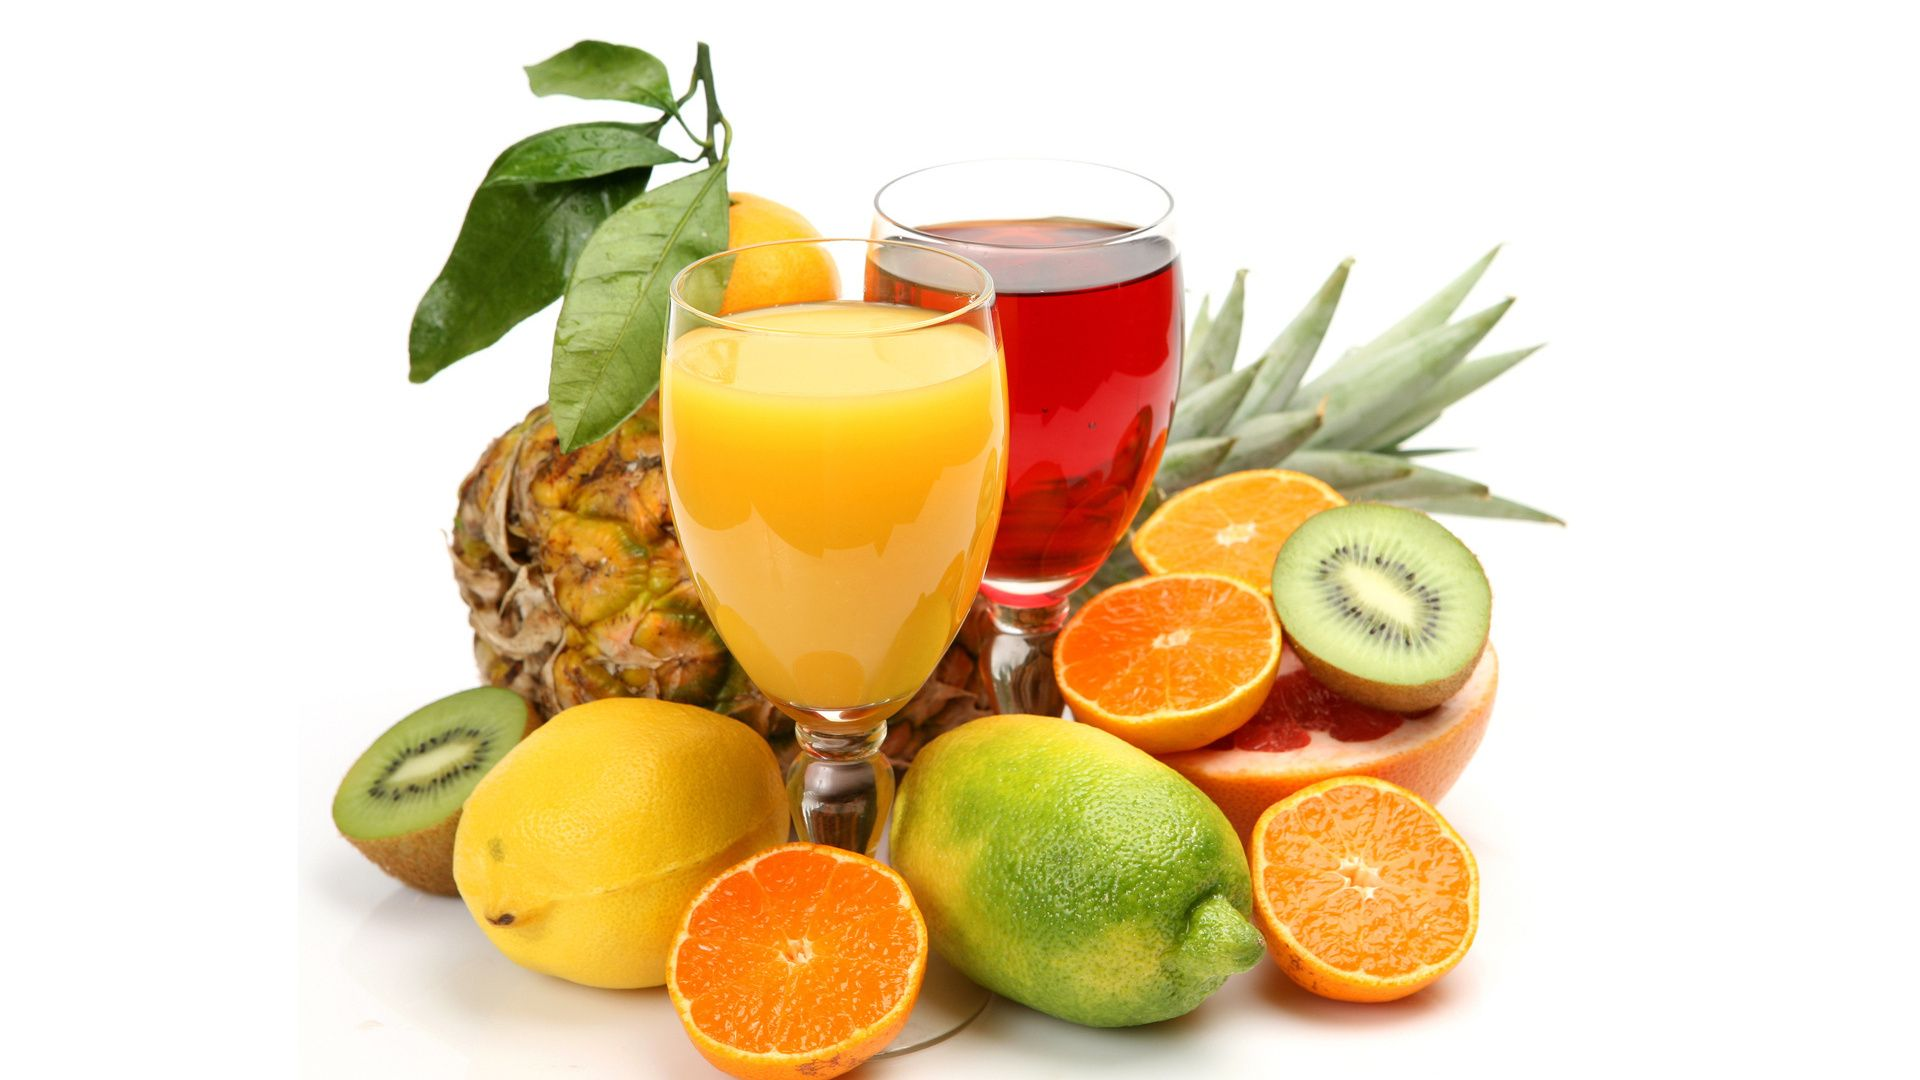 fresh fruit juice wallpaper wwwpixsharkcom images